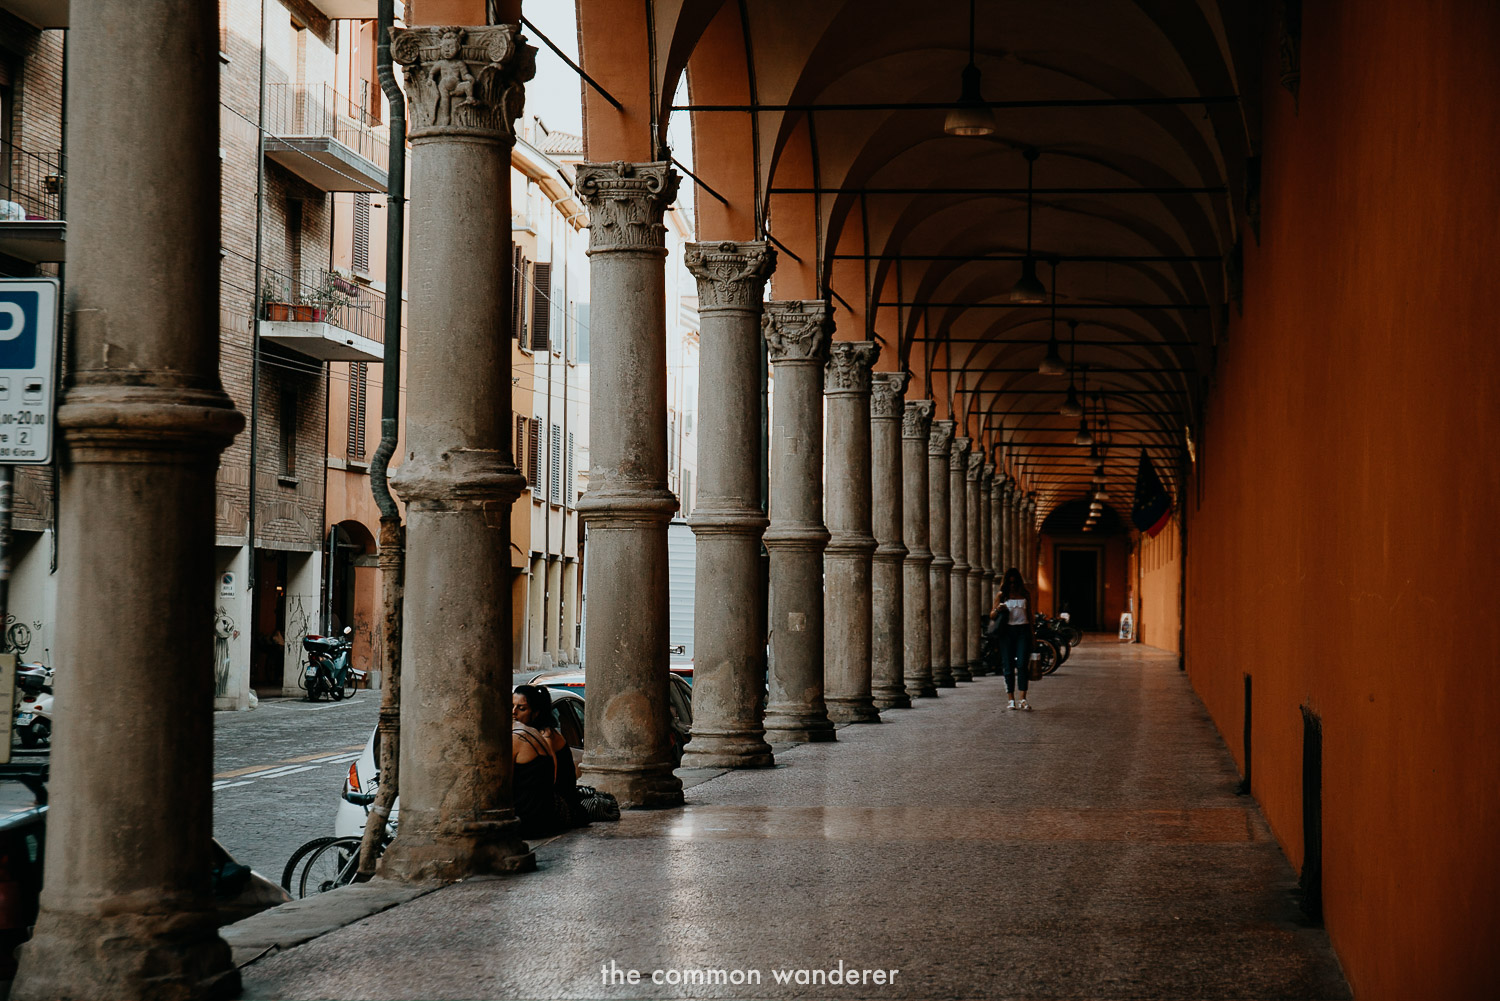 The_Common_Wanderer_best_things_to_do_Bologna-21.jpg